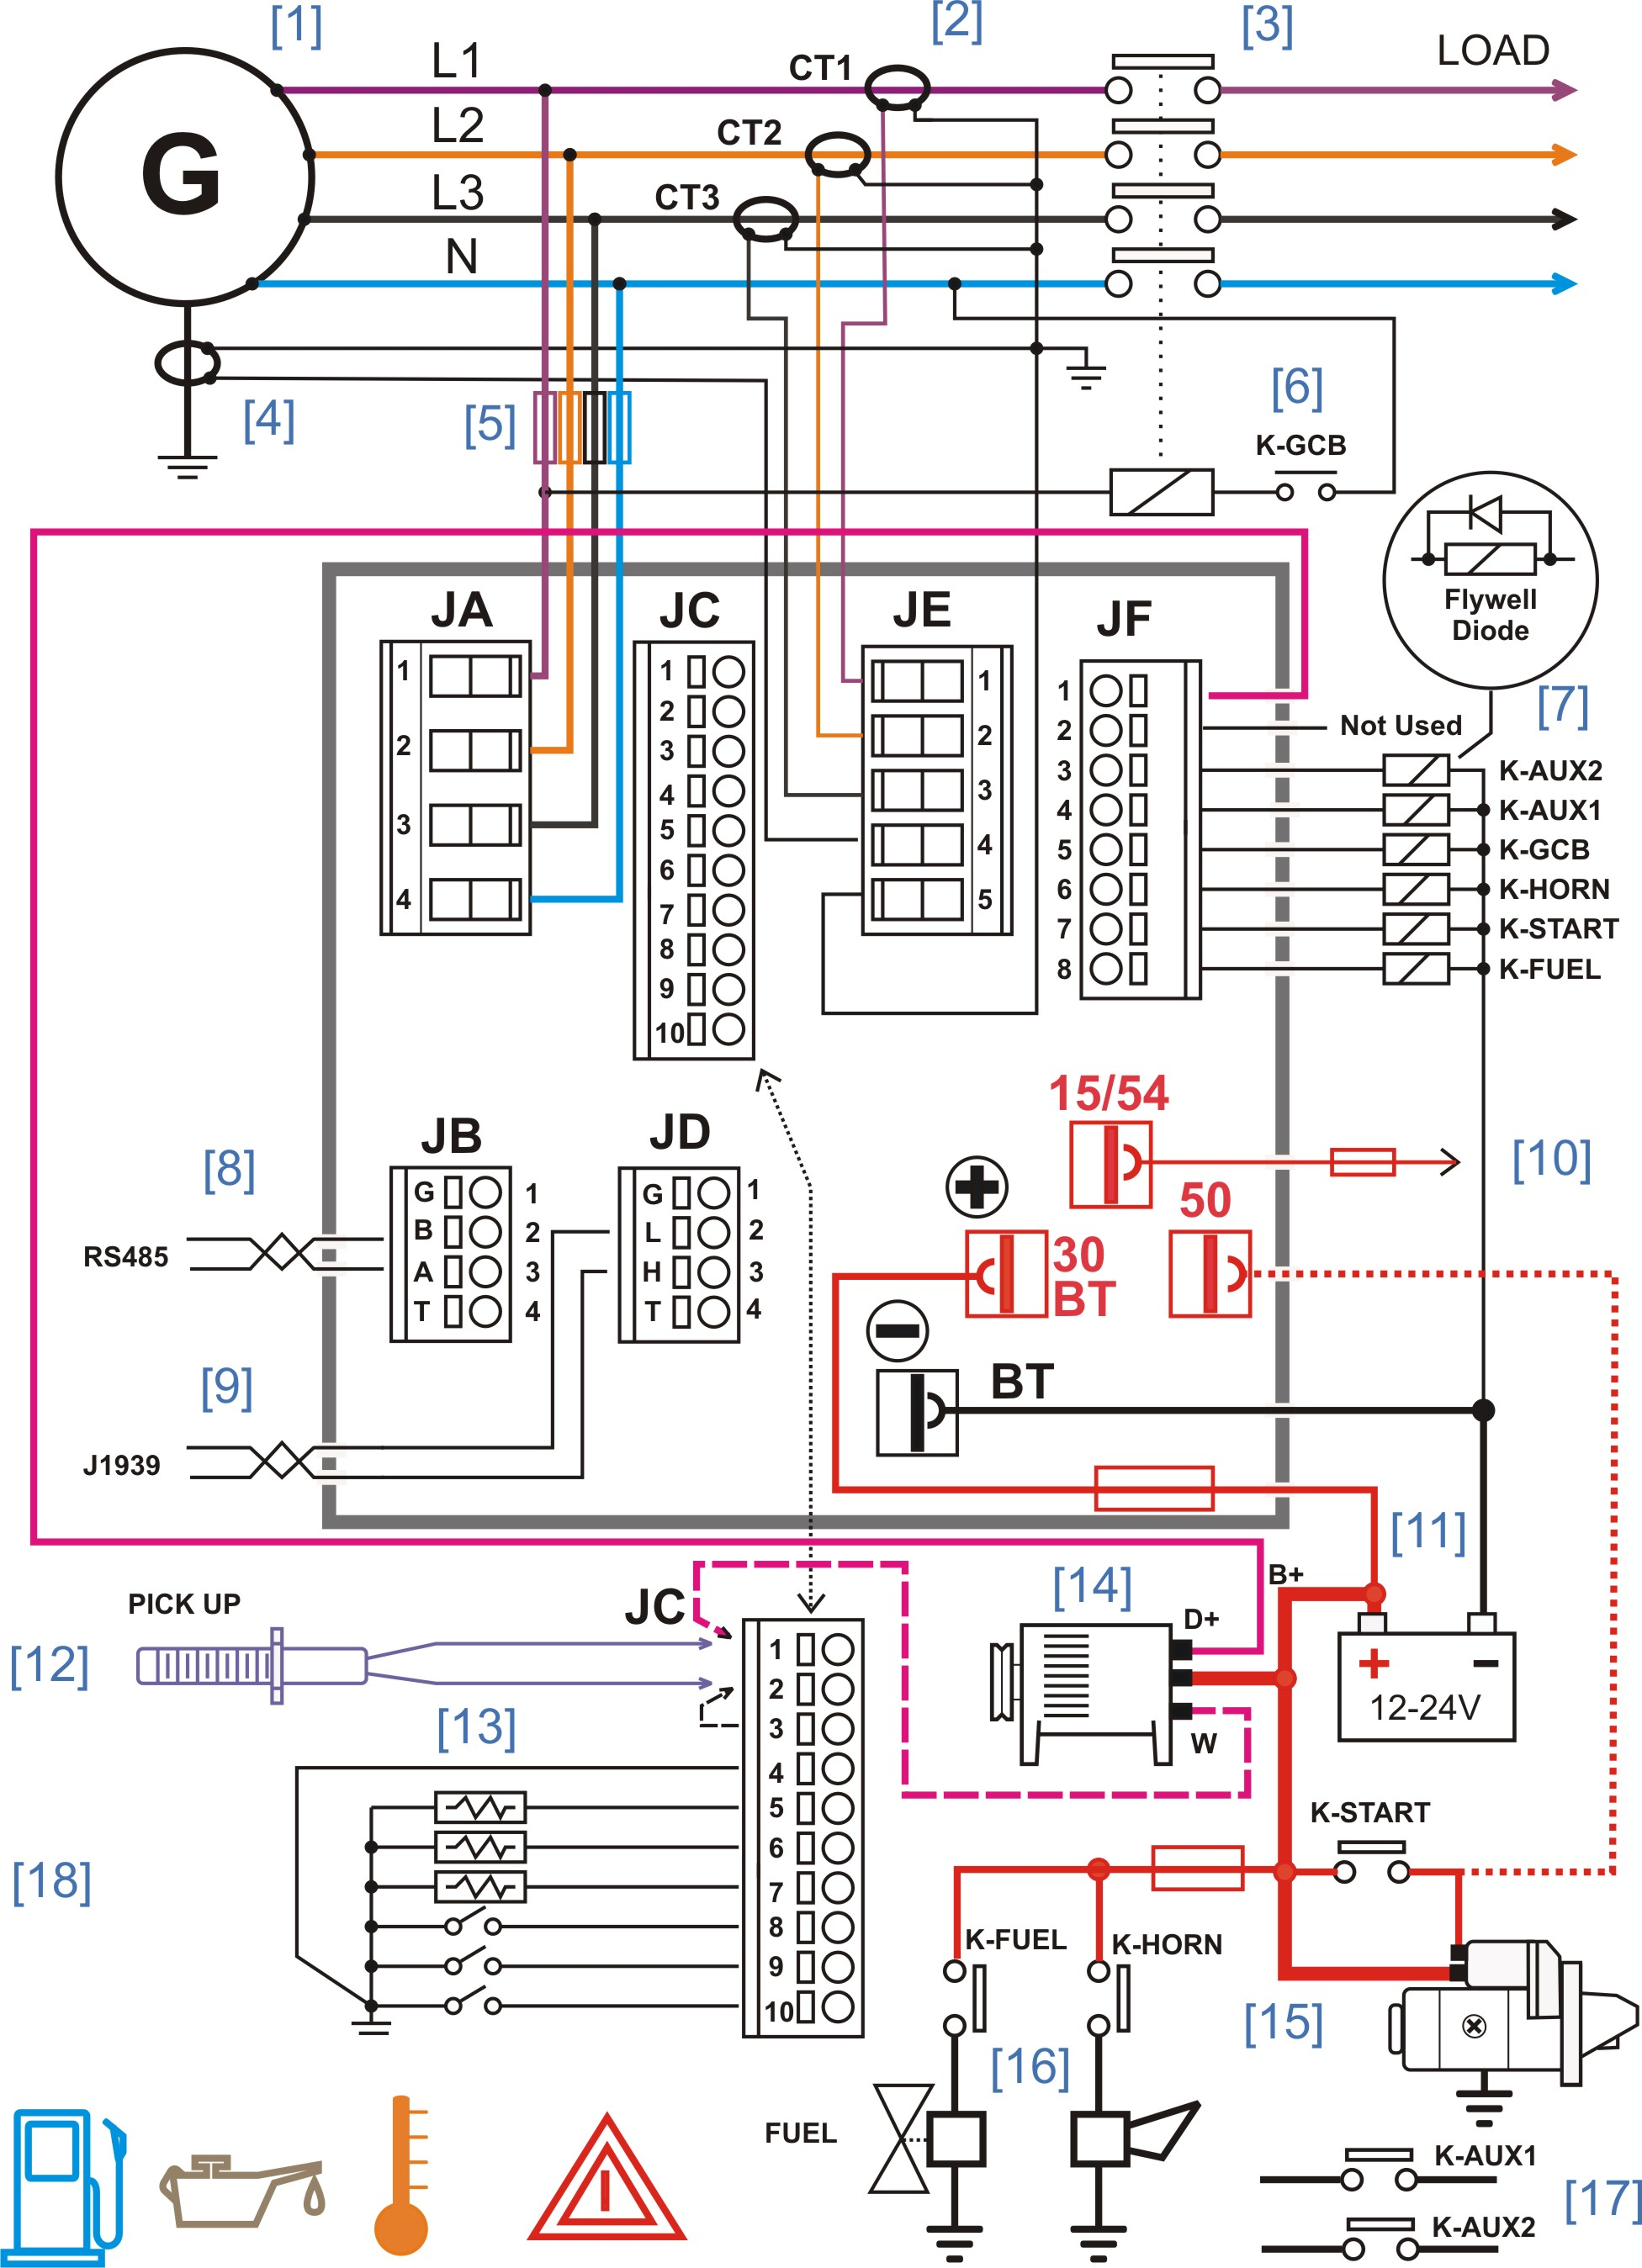 wiring diagram solar panel installation 1987 porsche 944 stereo home diagrams for electrical panels get free